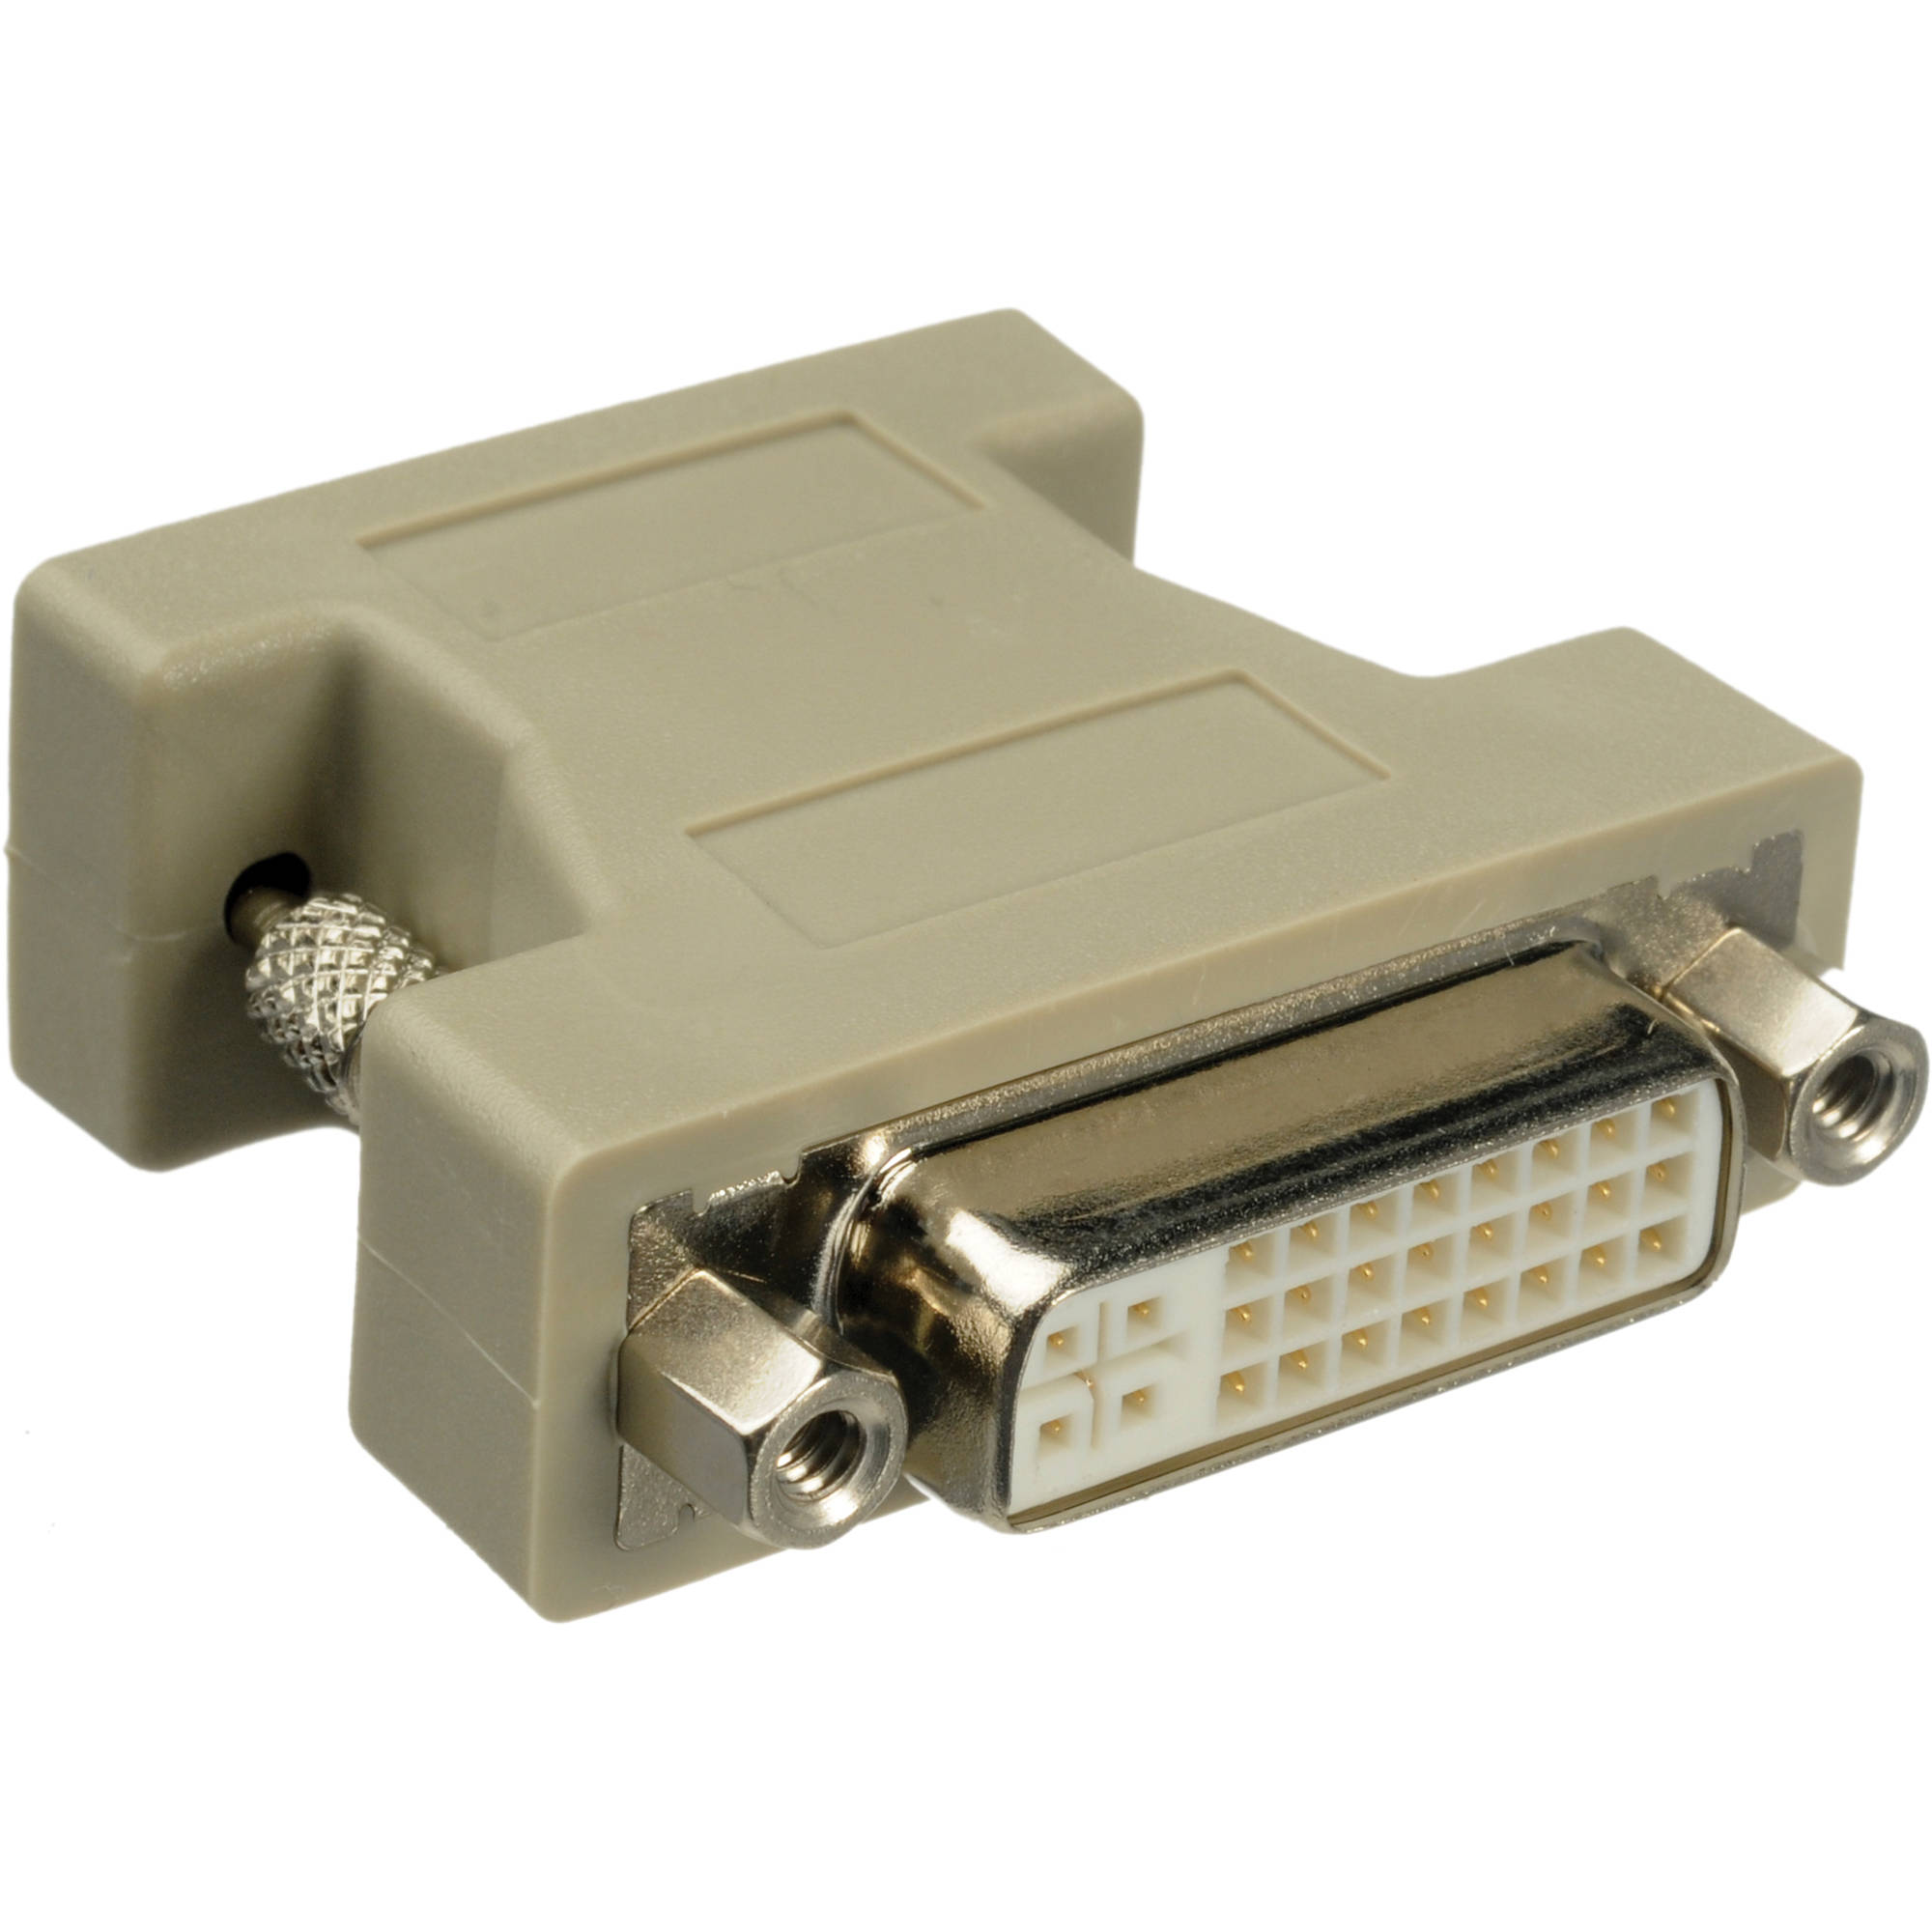 Comprehensive DVI-A Female Connector To VGA Male DVIAJ